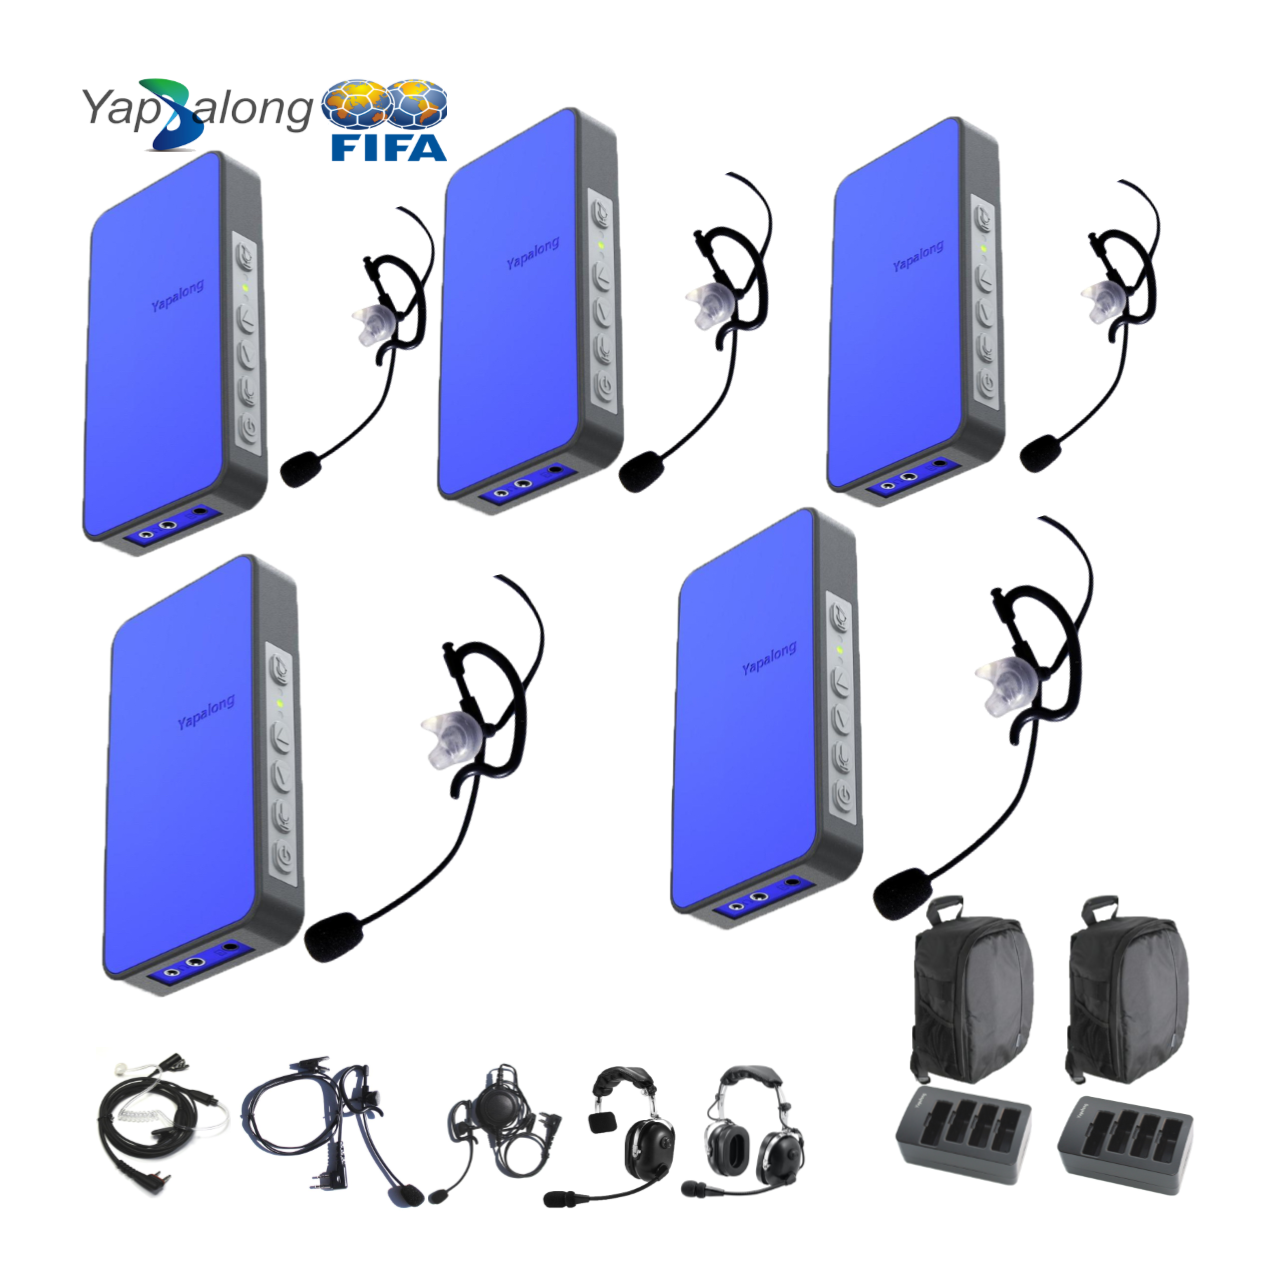 Yapalong 5000 (5-User) Complete Set Intercom Systems Intercom Systems